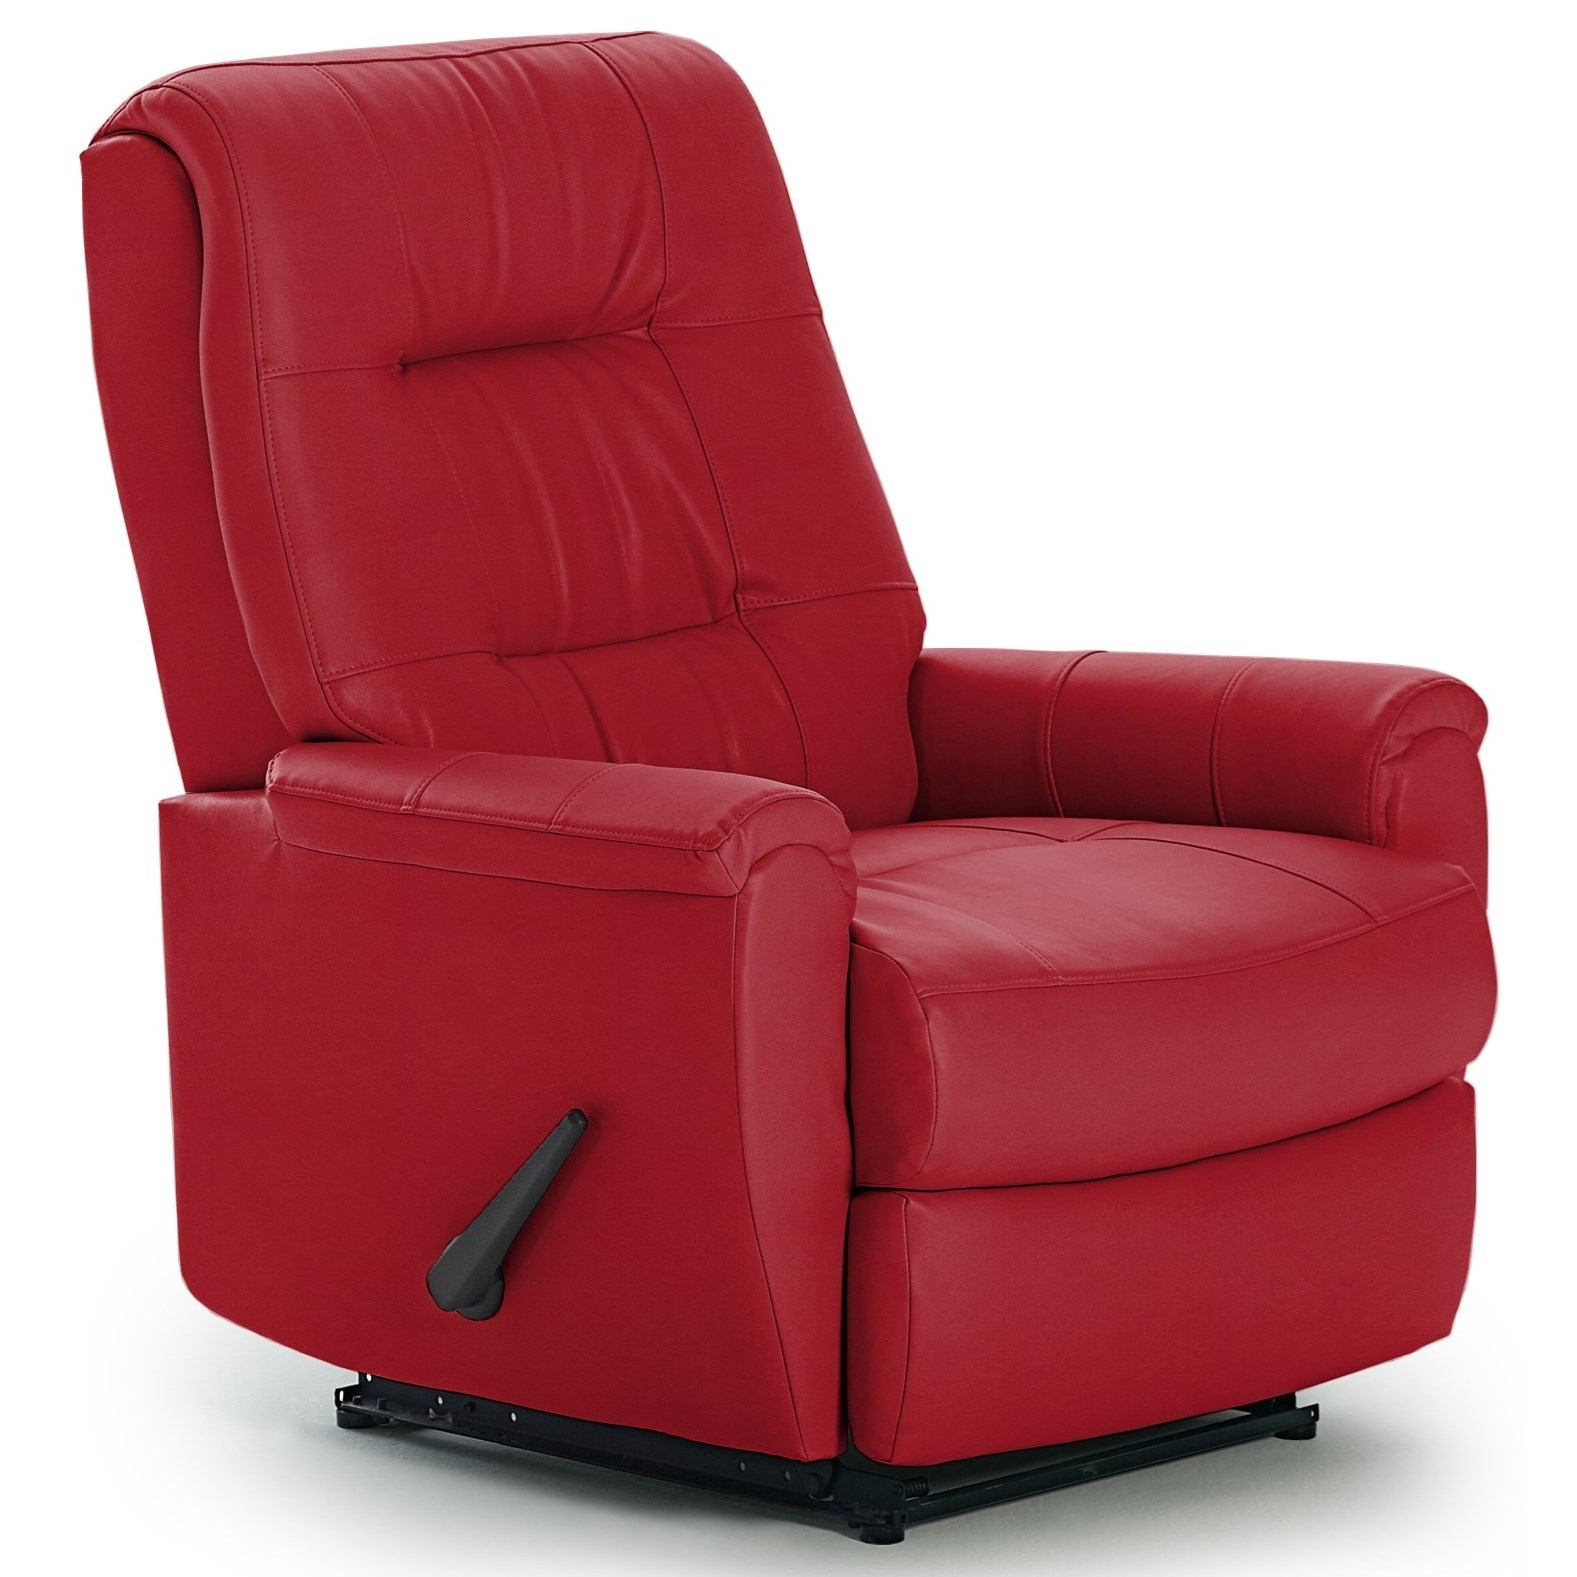 Best Home Furnishings Recliners - Petite Rocker Recliner - Item Number: -2083364182-28598U